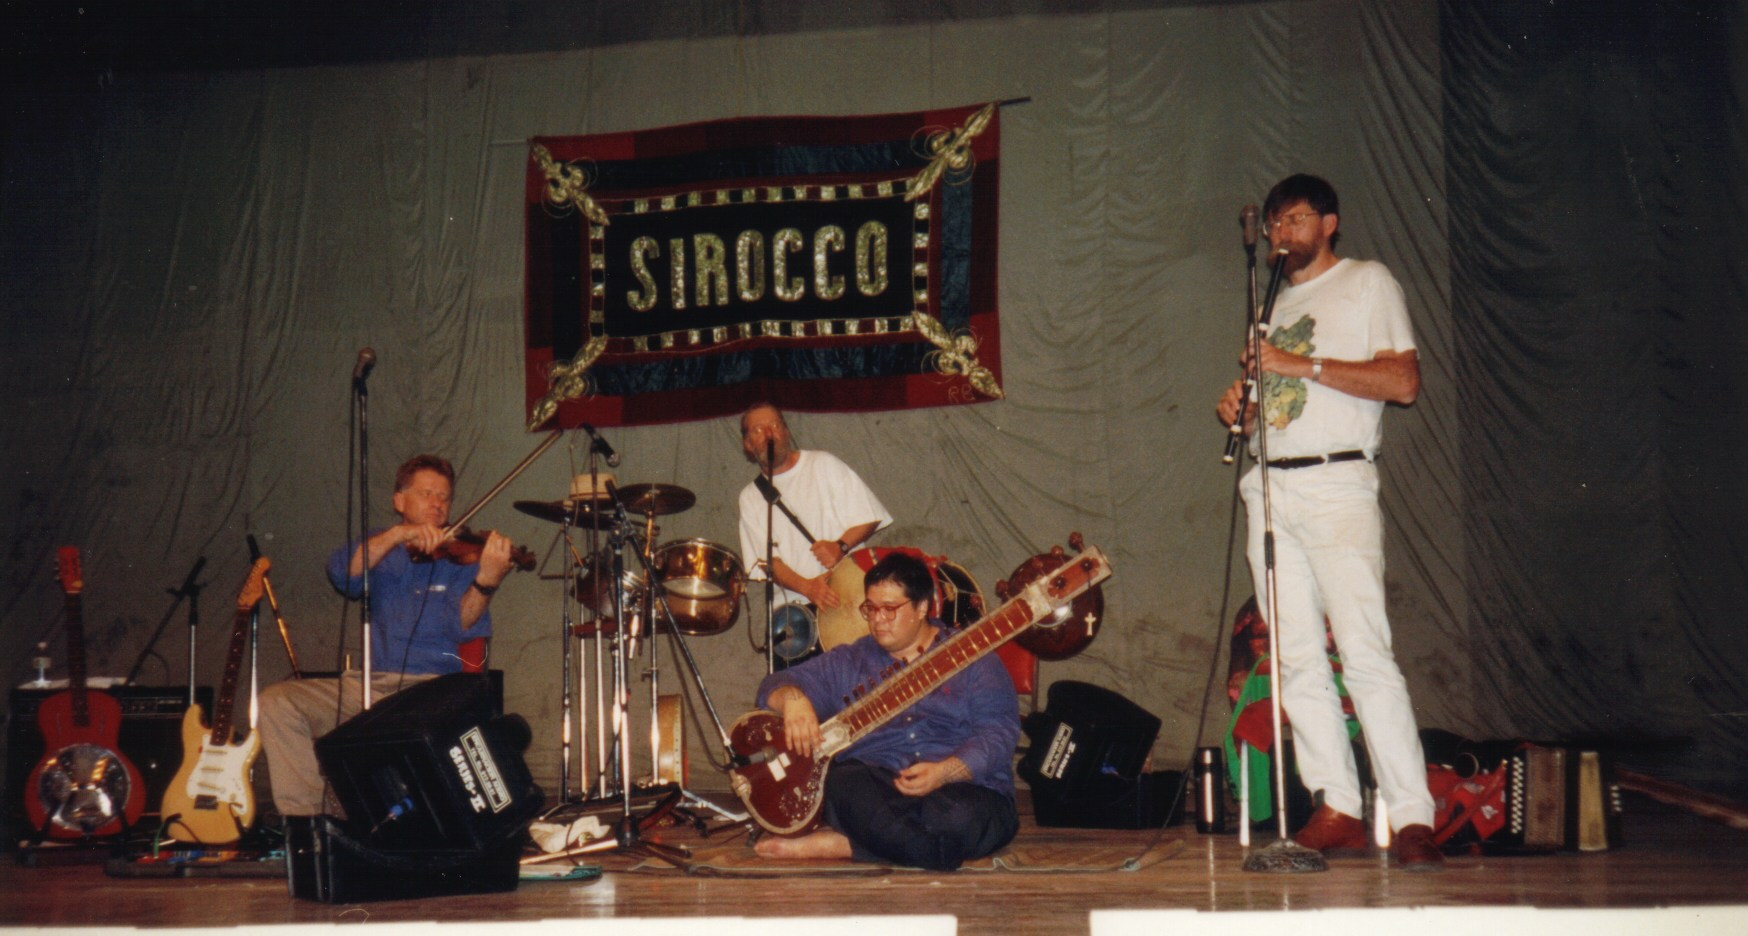 Figure 1. Sirocco rehearsing in Manila 1990 with Pilipino sitar player, Joey Valenciano. Left to right: Andrew de Teliga, Guy Madigan, Joey Valenciano, Bill O'Toole. (Photograph courtesy Bill O'Toole; used with permission.)